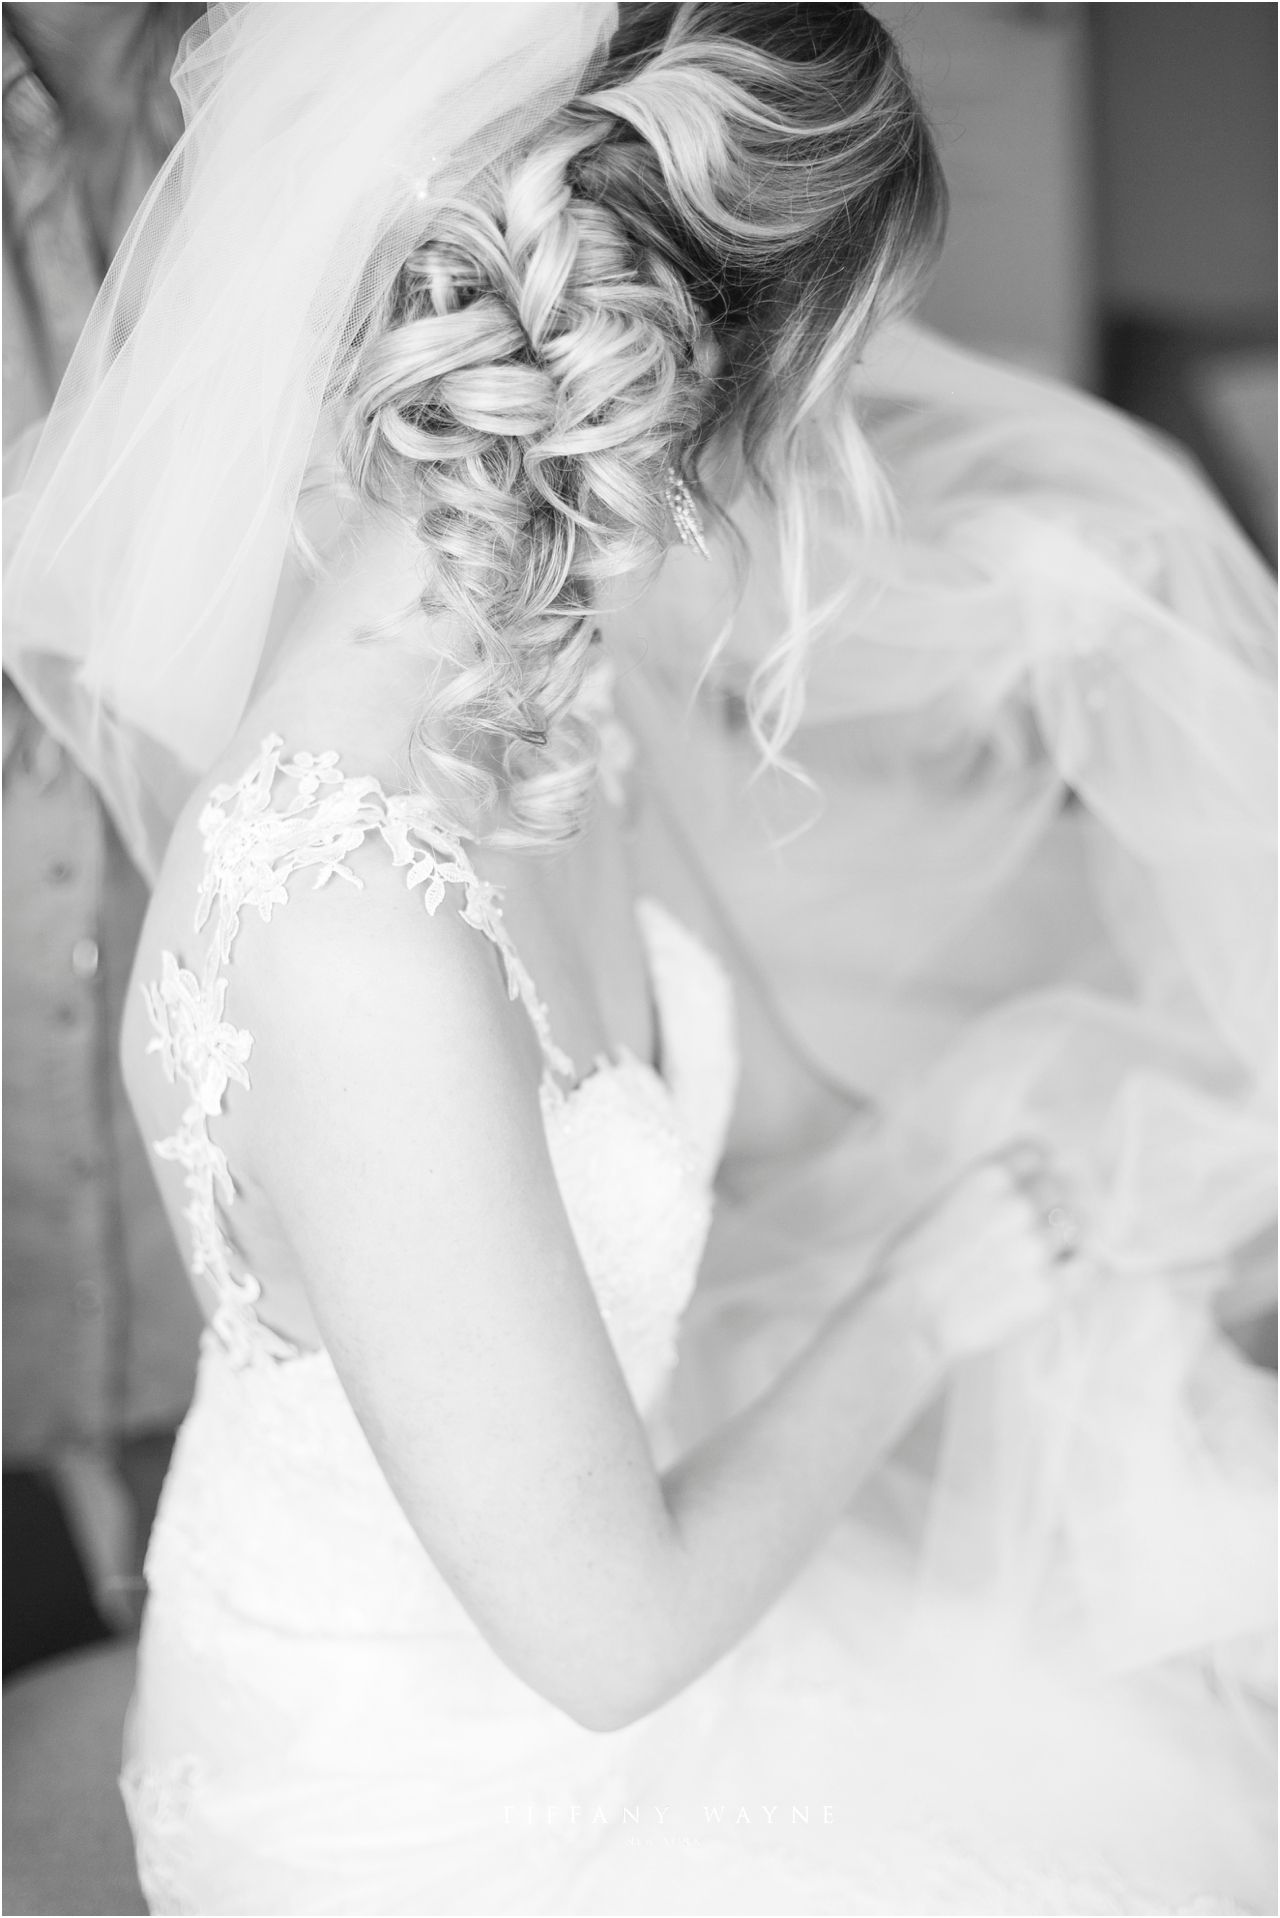 Bridal Hairstyles Ideas And Inspiration Bride Updo Hairstyle